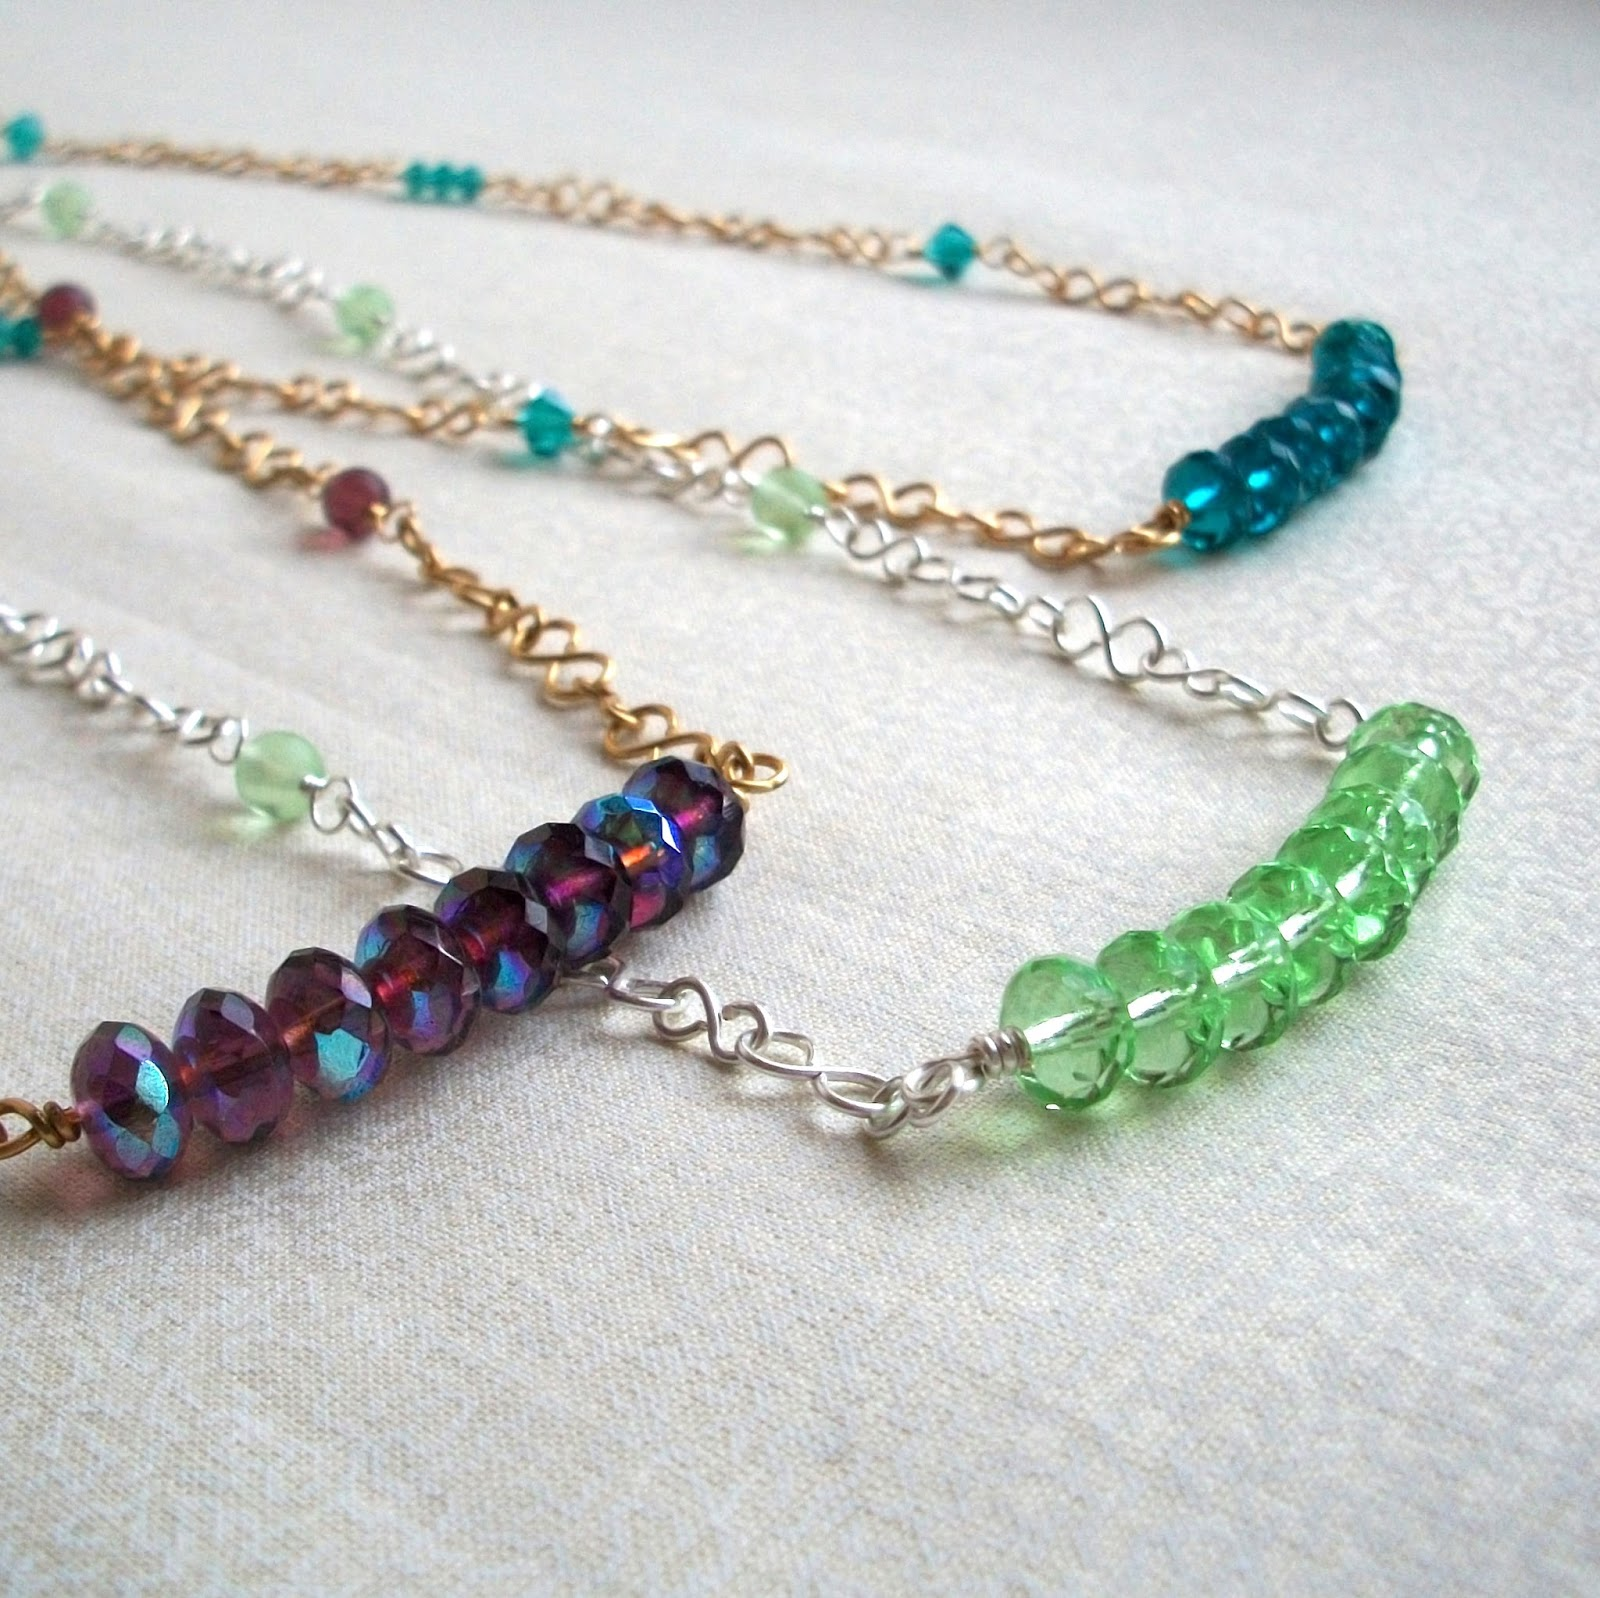 Three Sets of Glass Jewelry Designs, Purple, Green & Teal